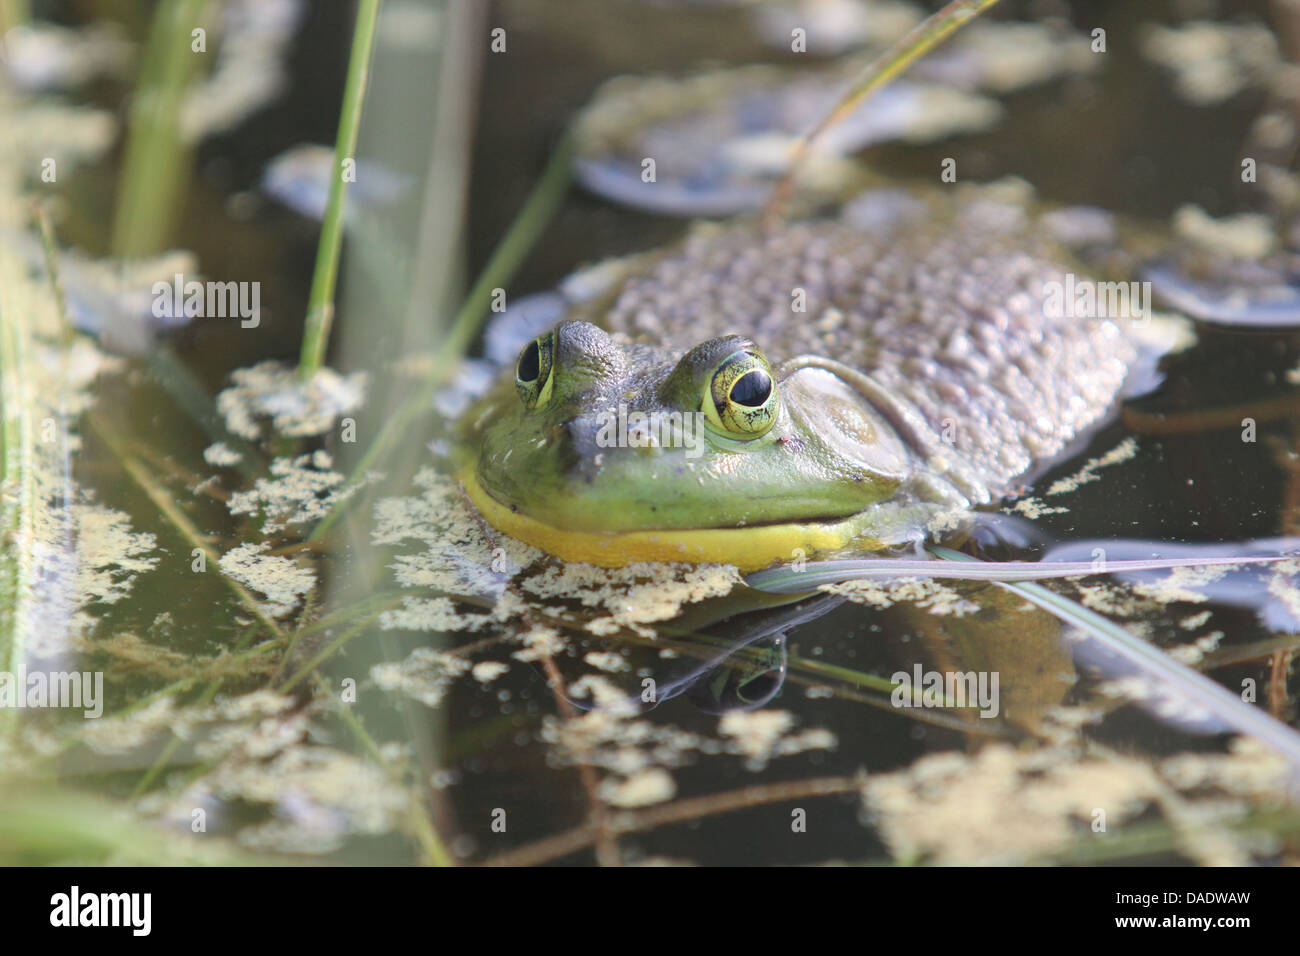 Camouflaged frog in water Stock Photo